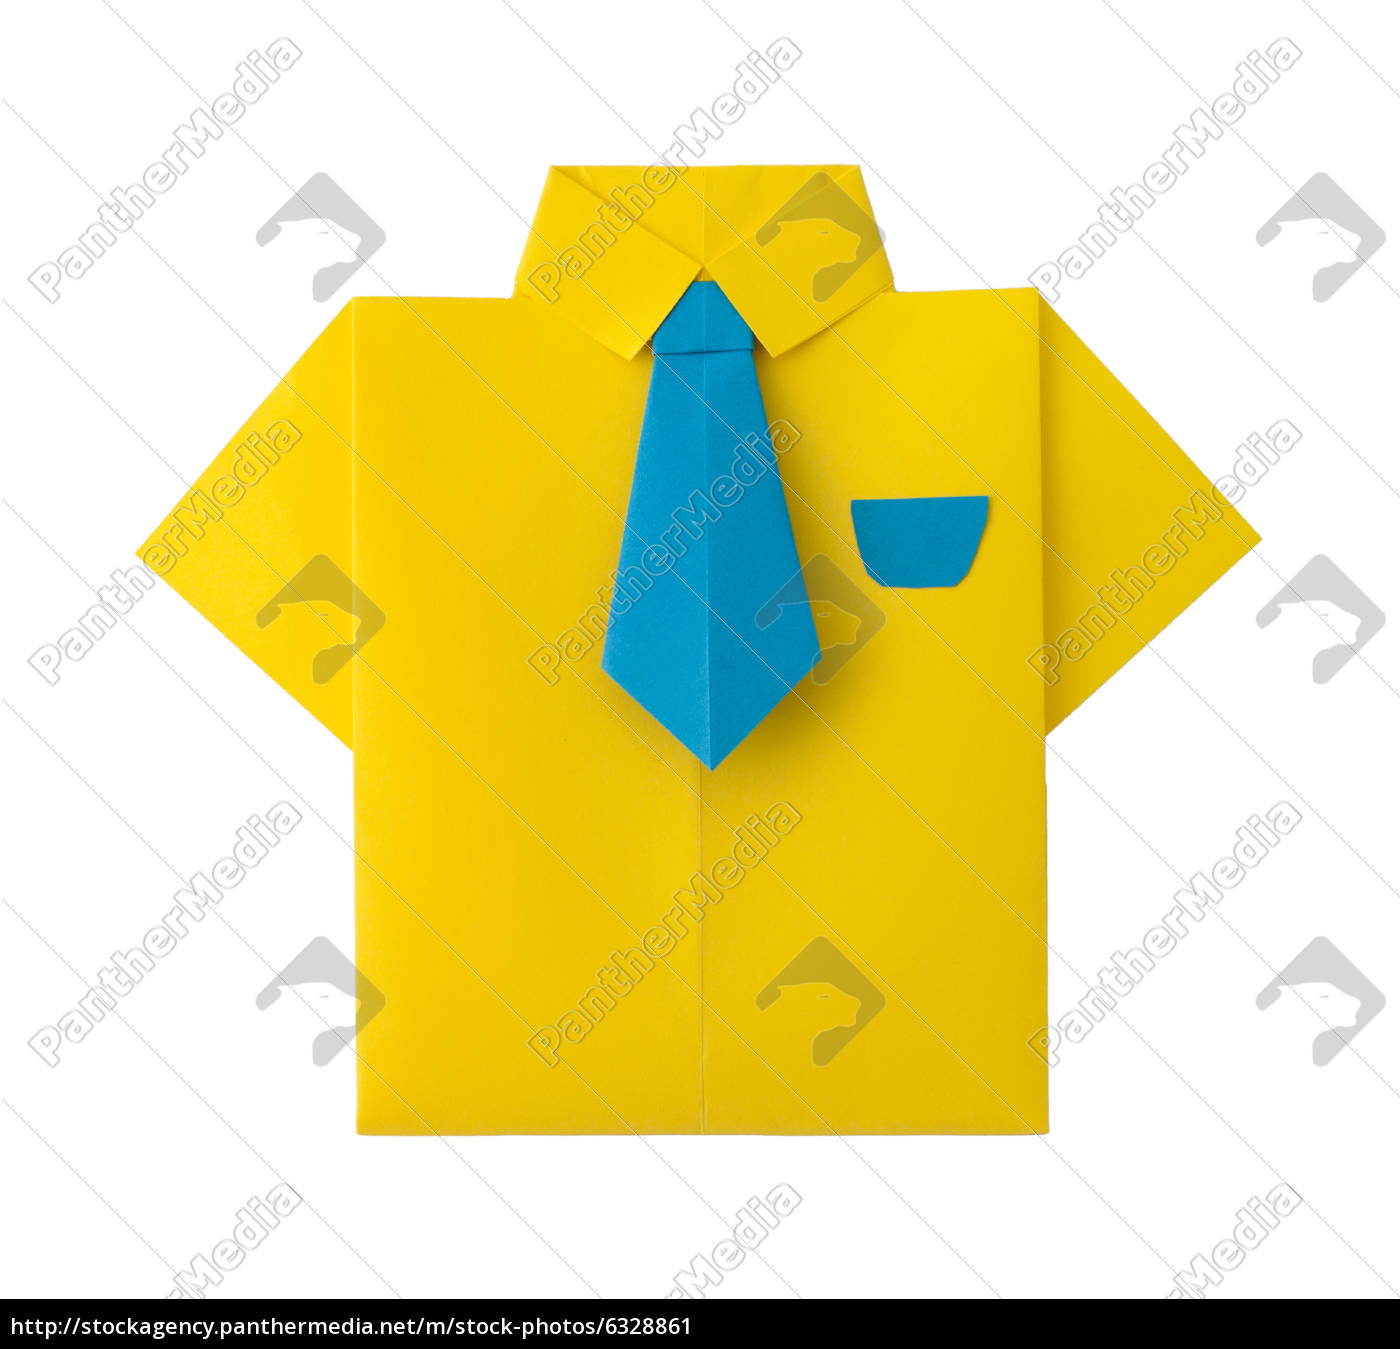 Origami Shirt And Tie Origami Dollar Shirt And Tie Dreamworks